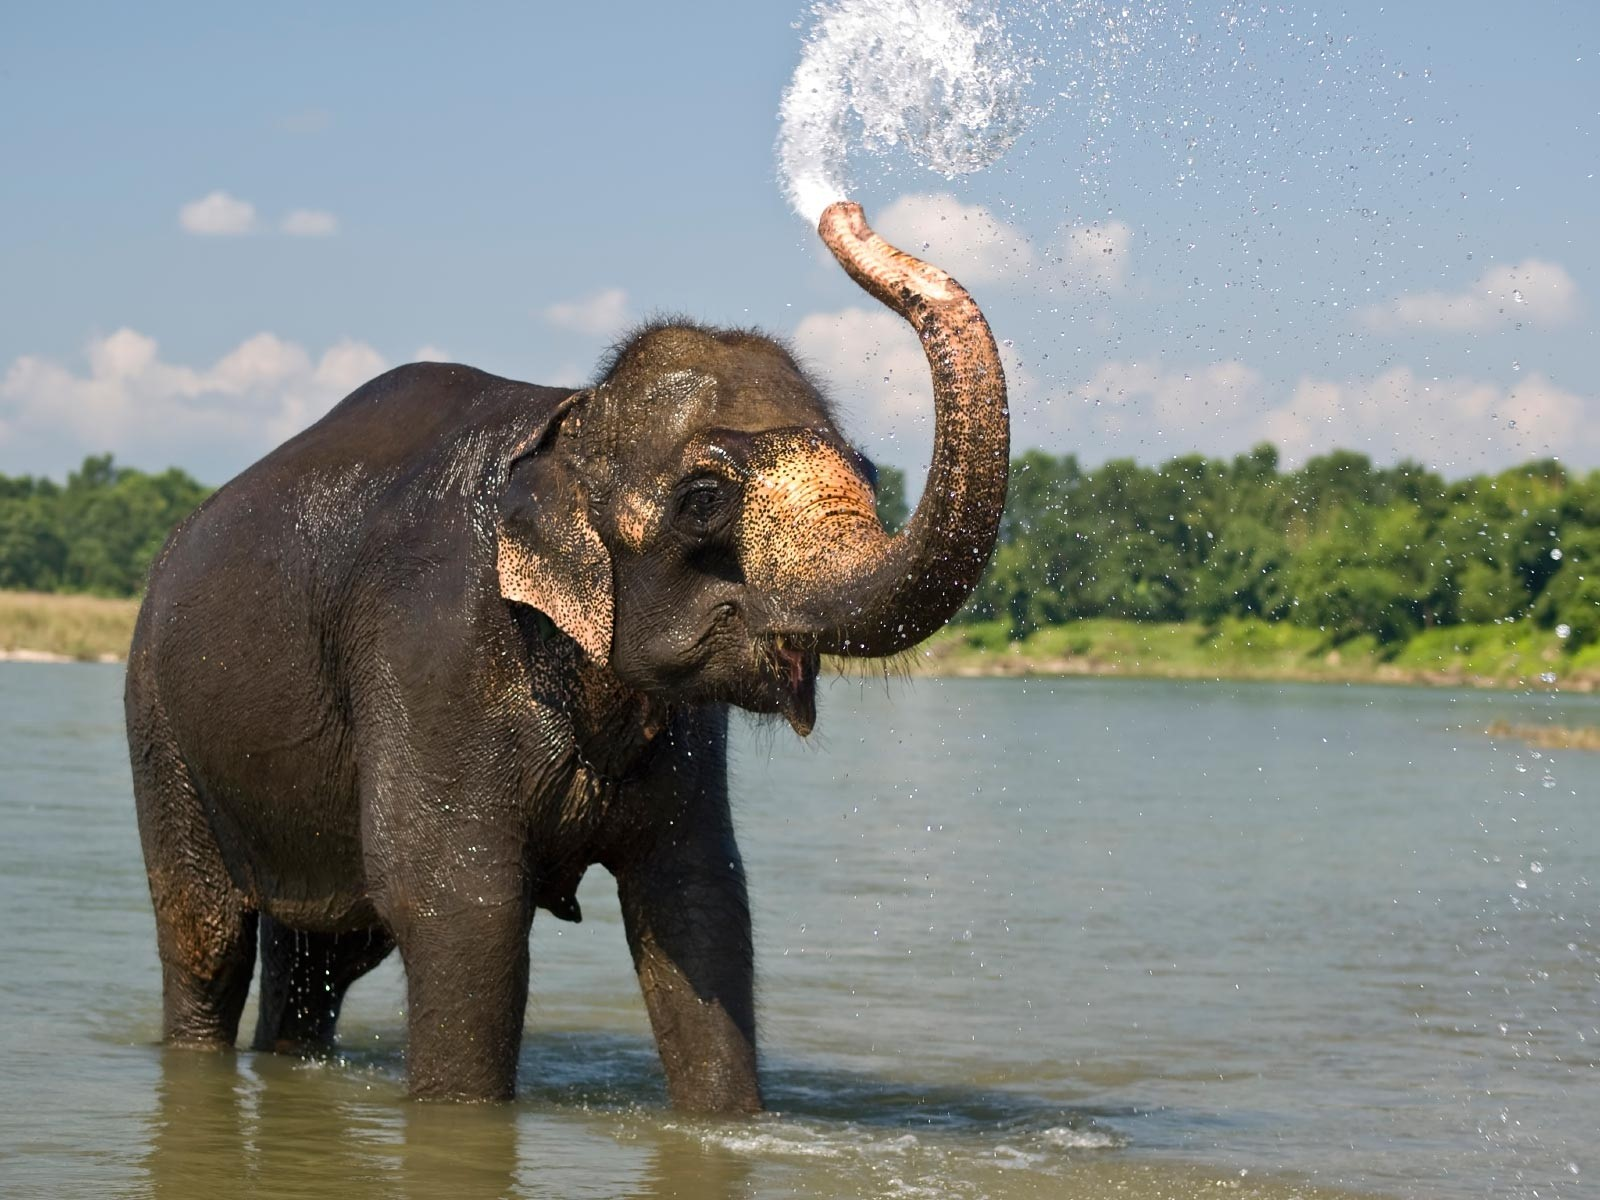 Elephant in water photo